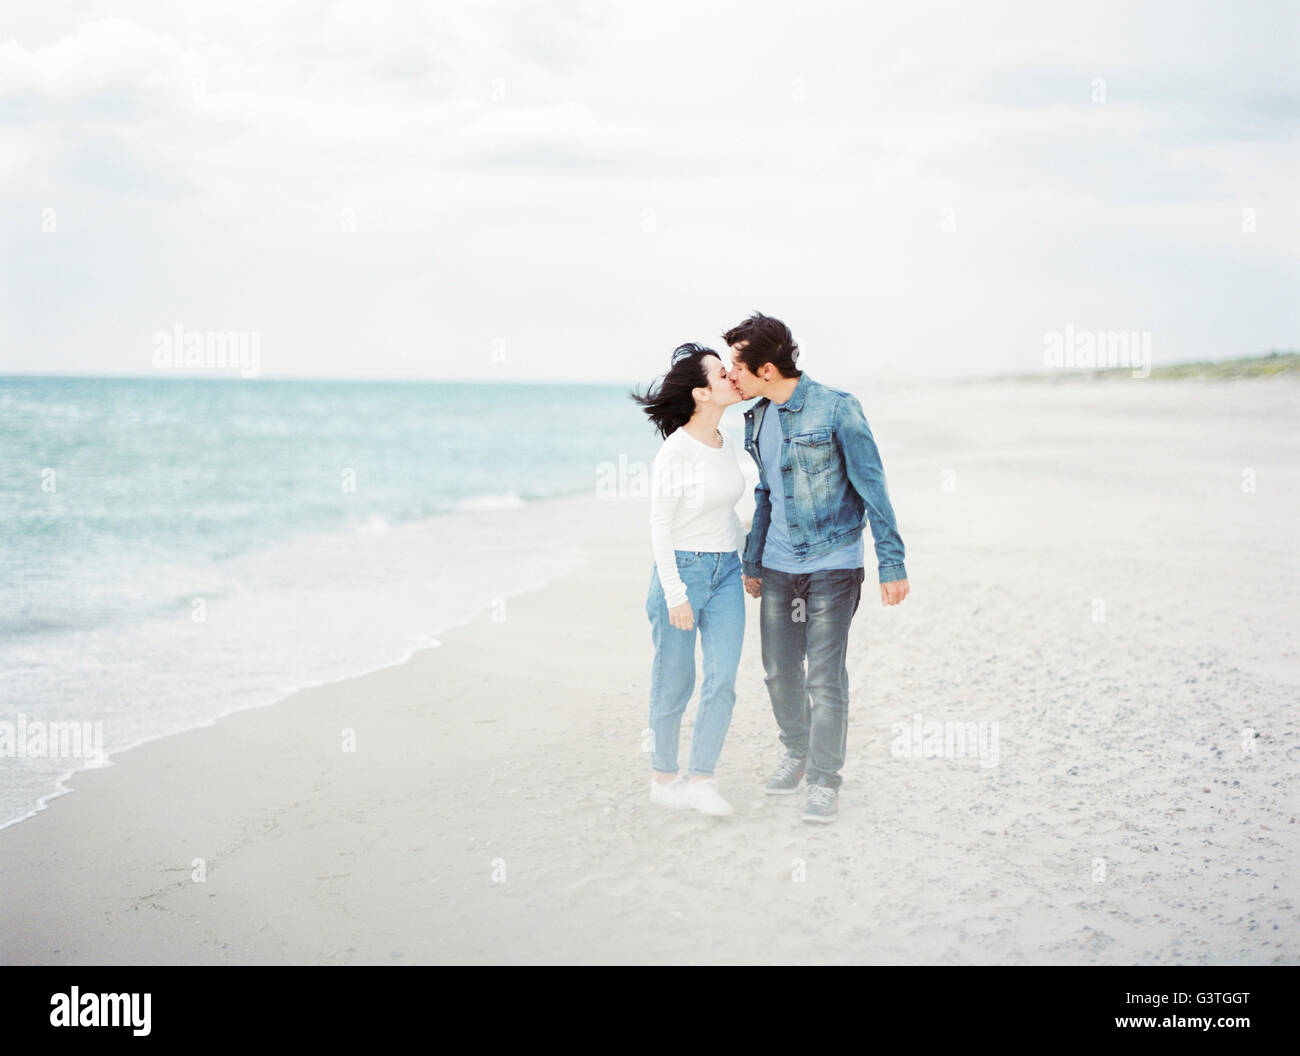 Spain, Valencia, Couple kissing on beach - Stock Image